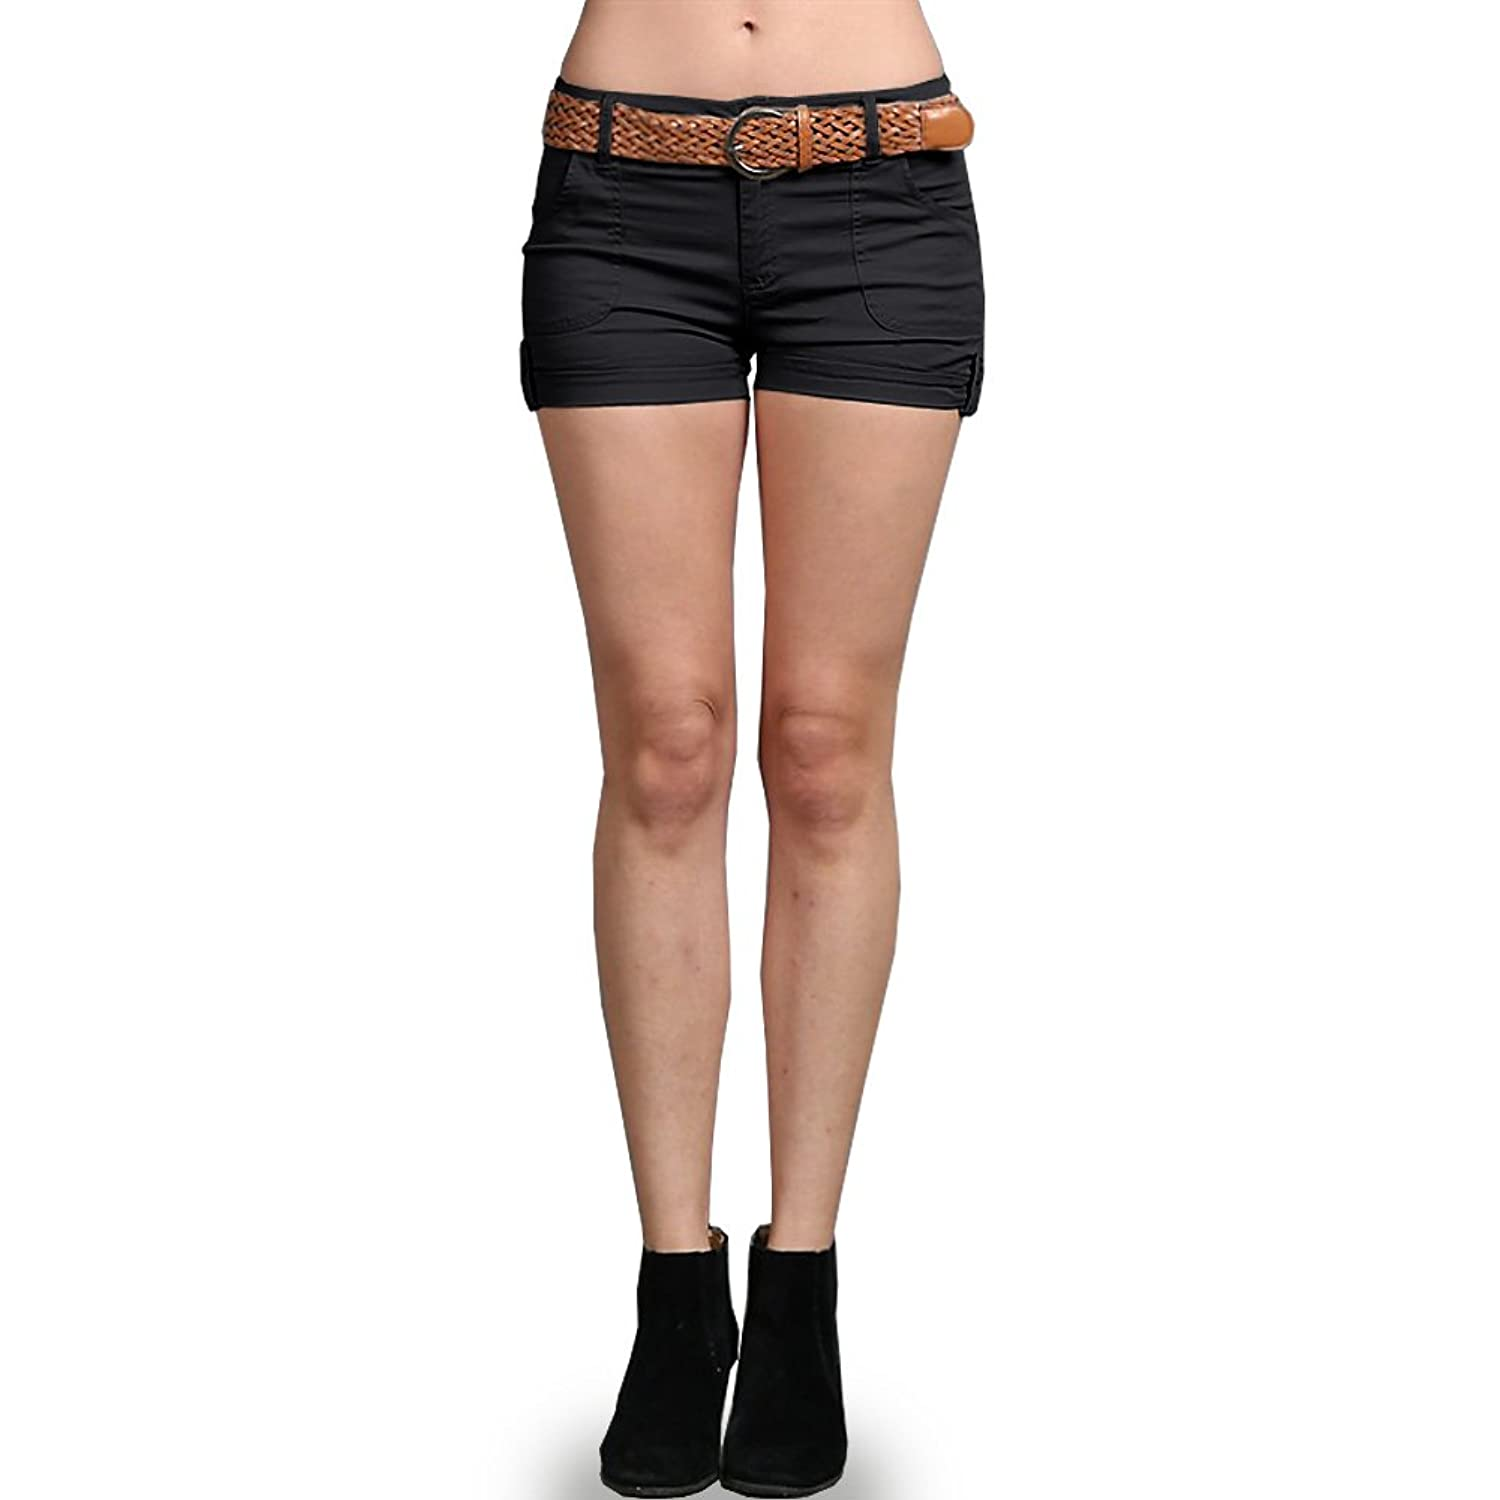 b1bcafb7c2f7 New Fashion Women s Cotton Twill Sexy Hot Casual Shorts with Wide Belt  Pants delicate